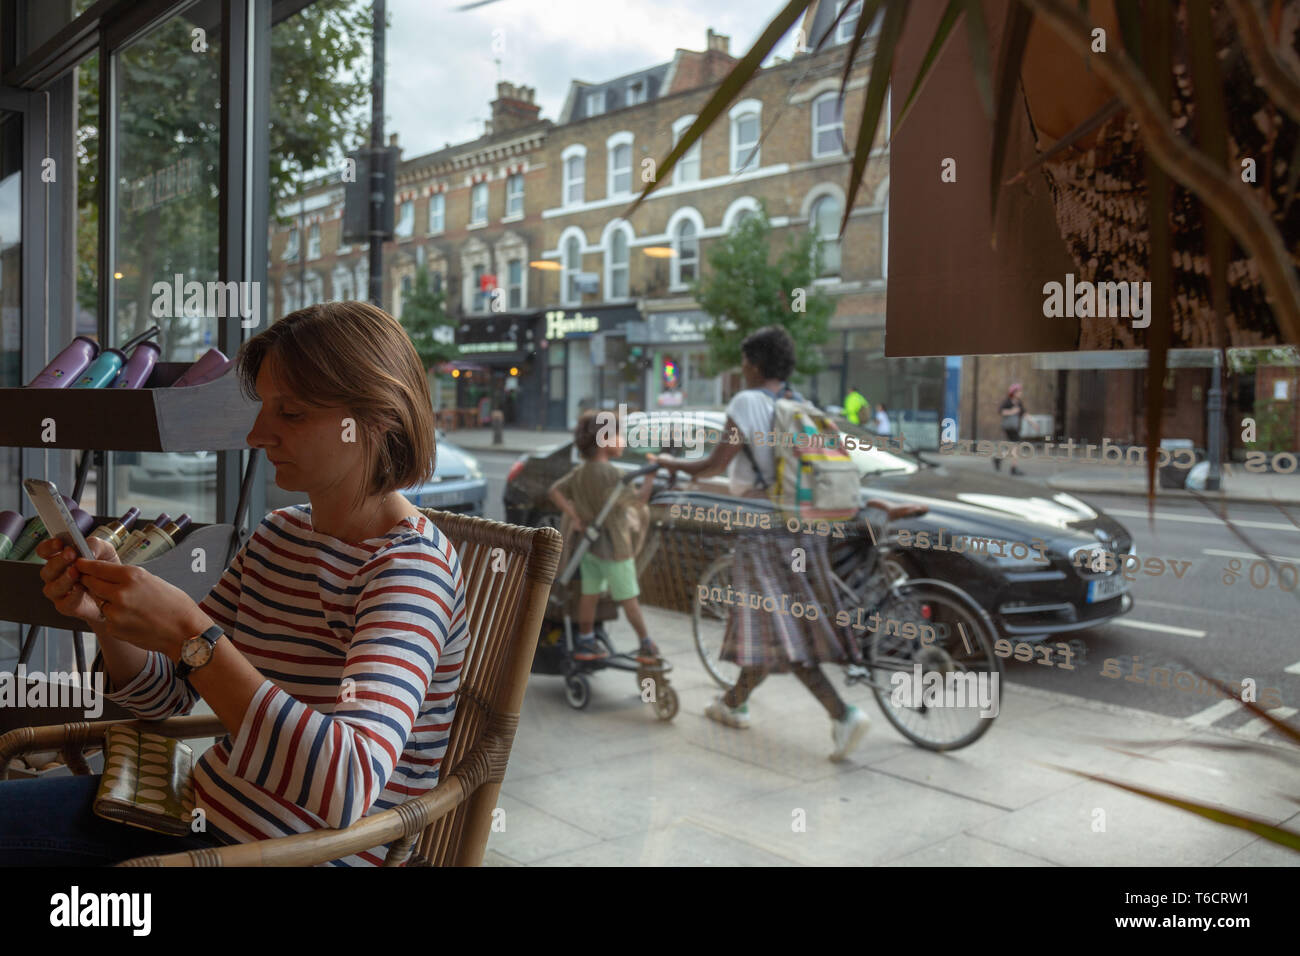 woman sitting in a hairdresser reading and passing people behind. London - Stock Image